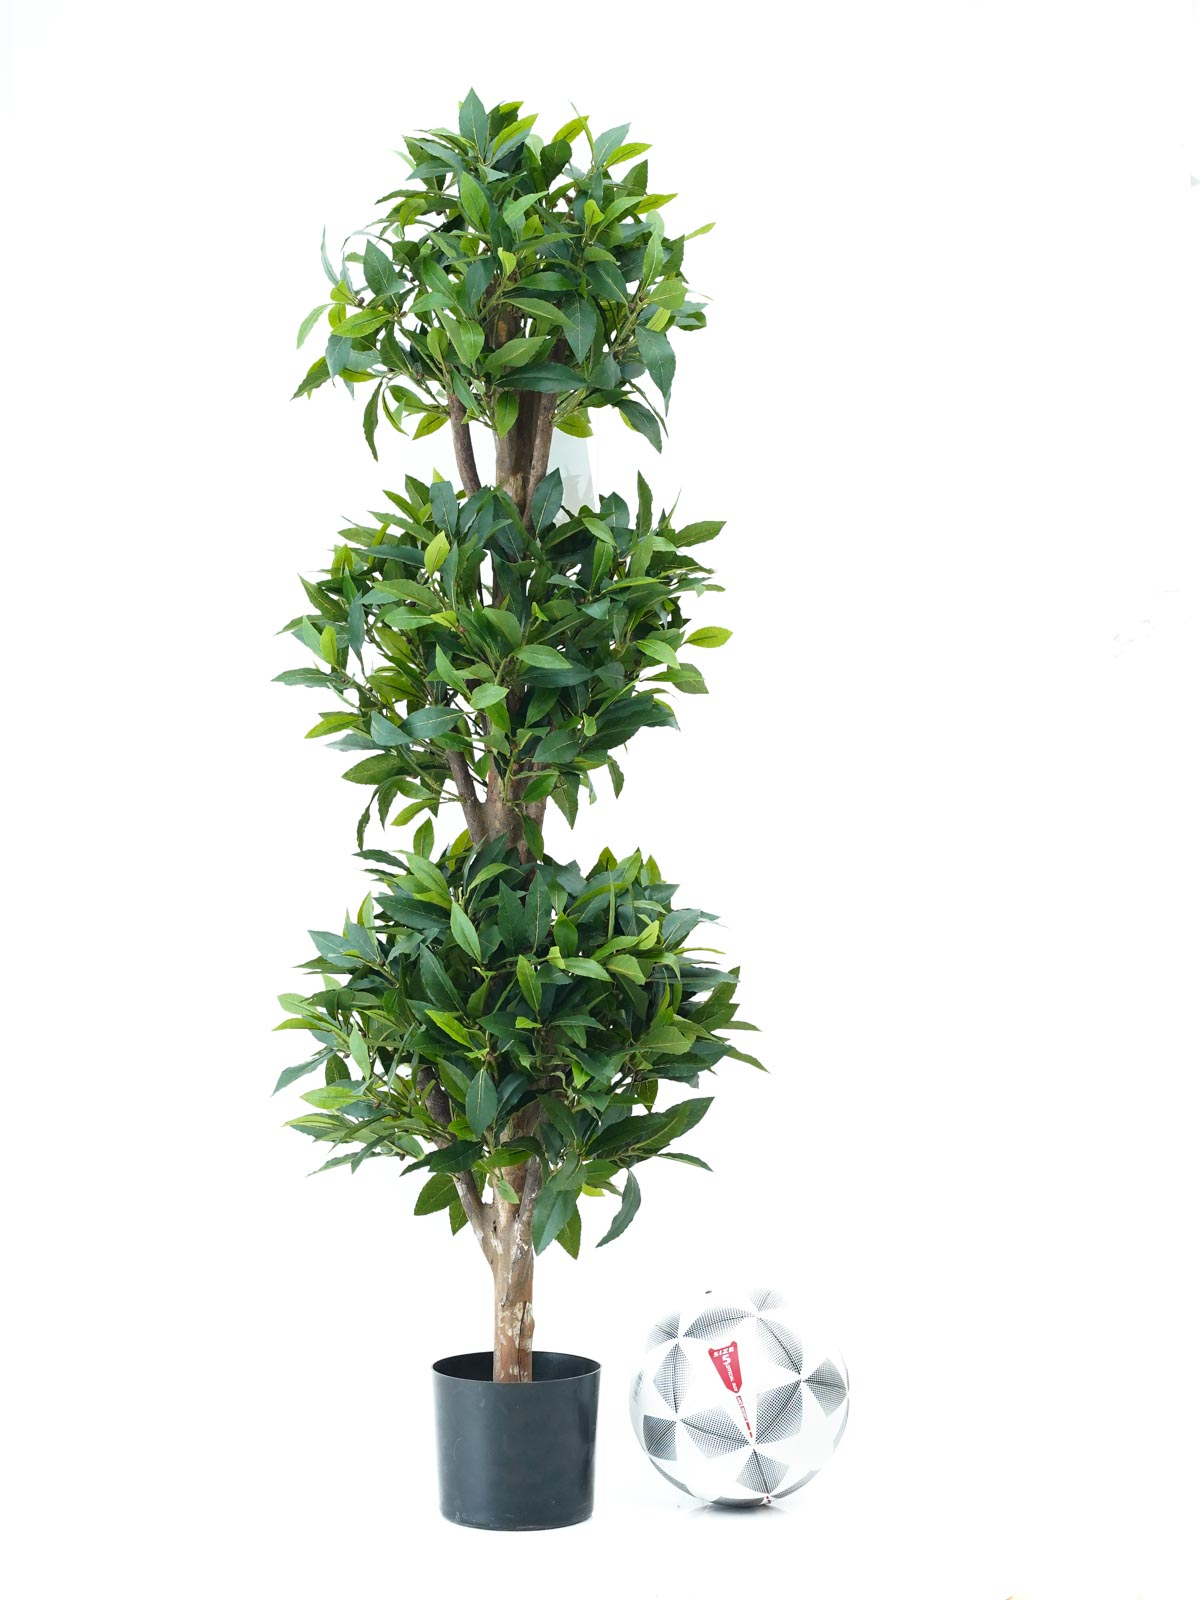 Sweet Bay Ball tree 4 Large Artificial Plants